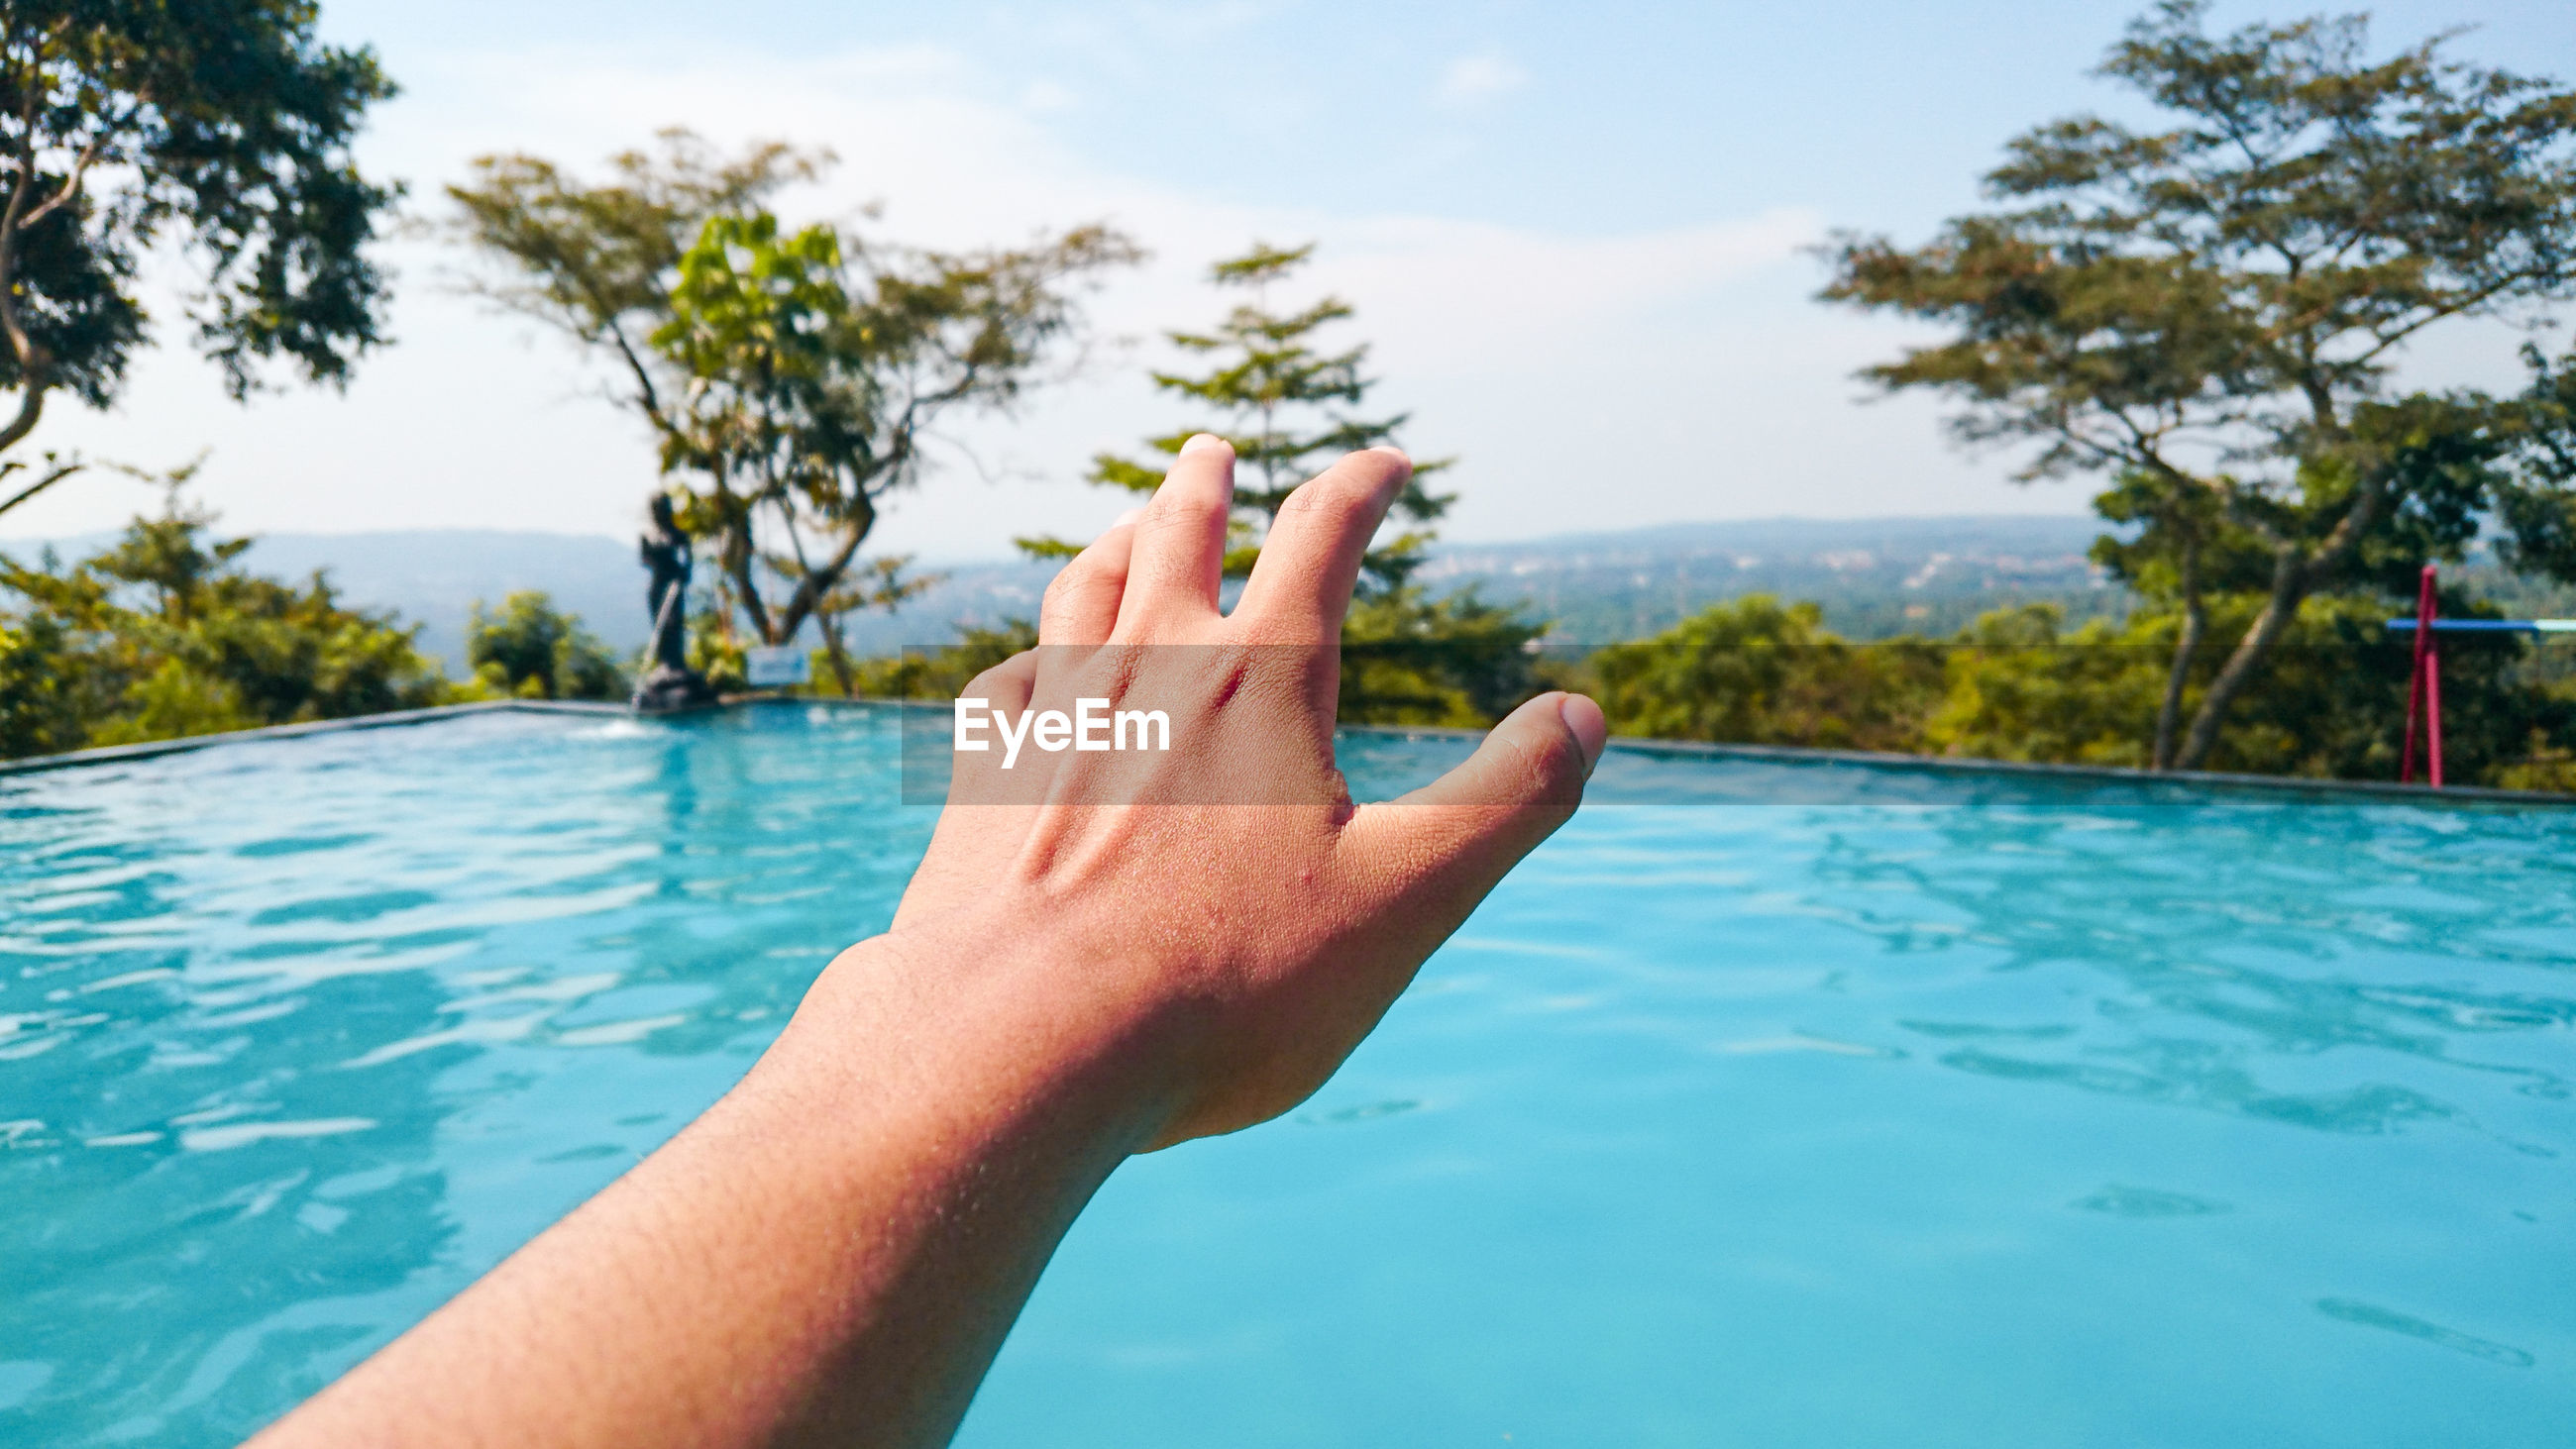 Cropped image of hand against swimming pool